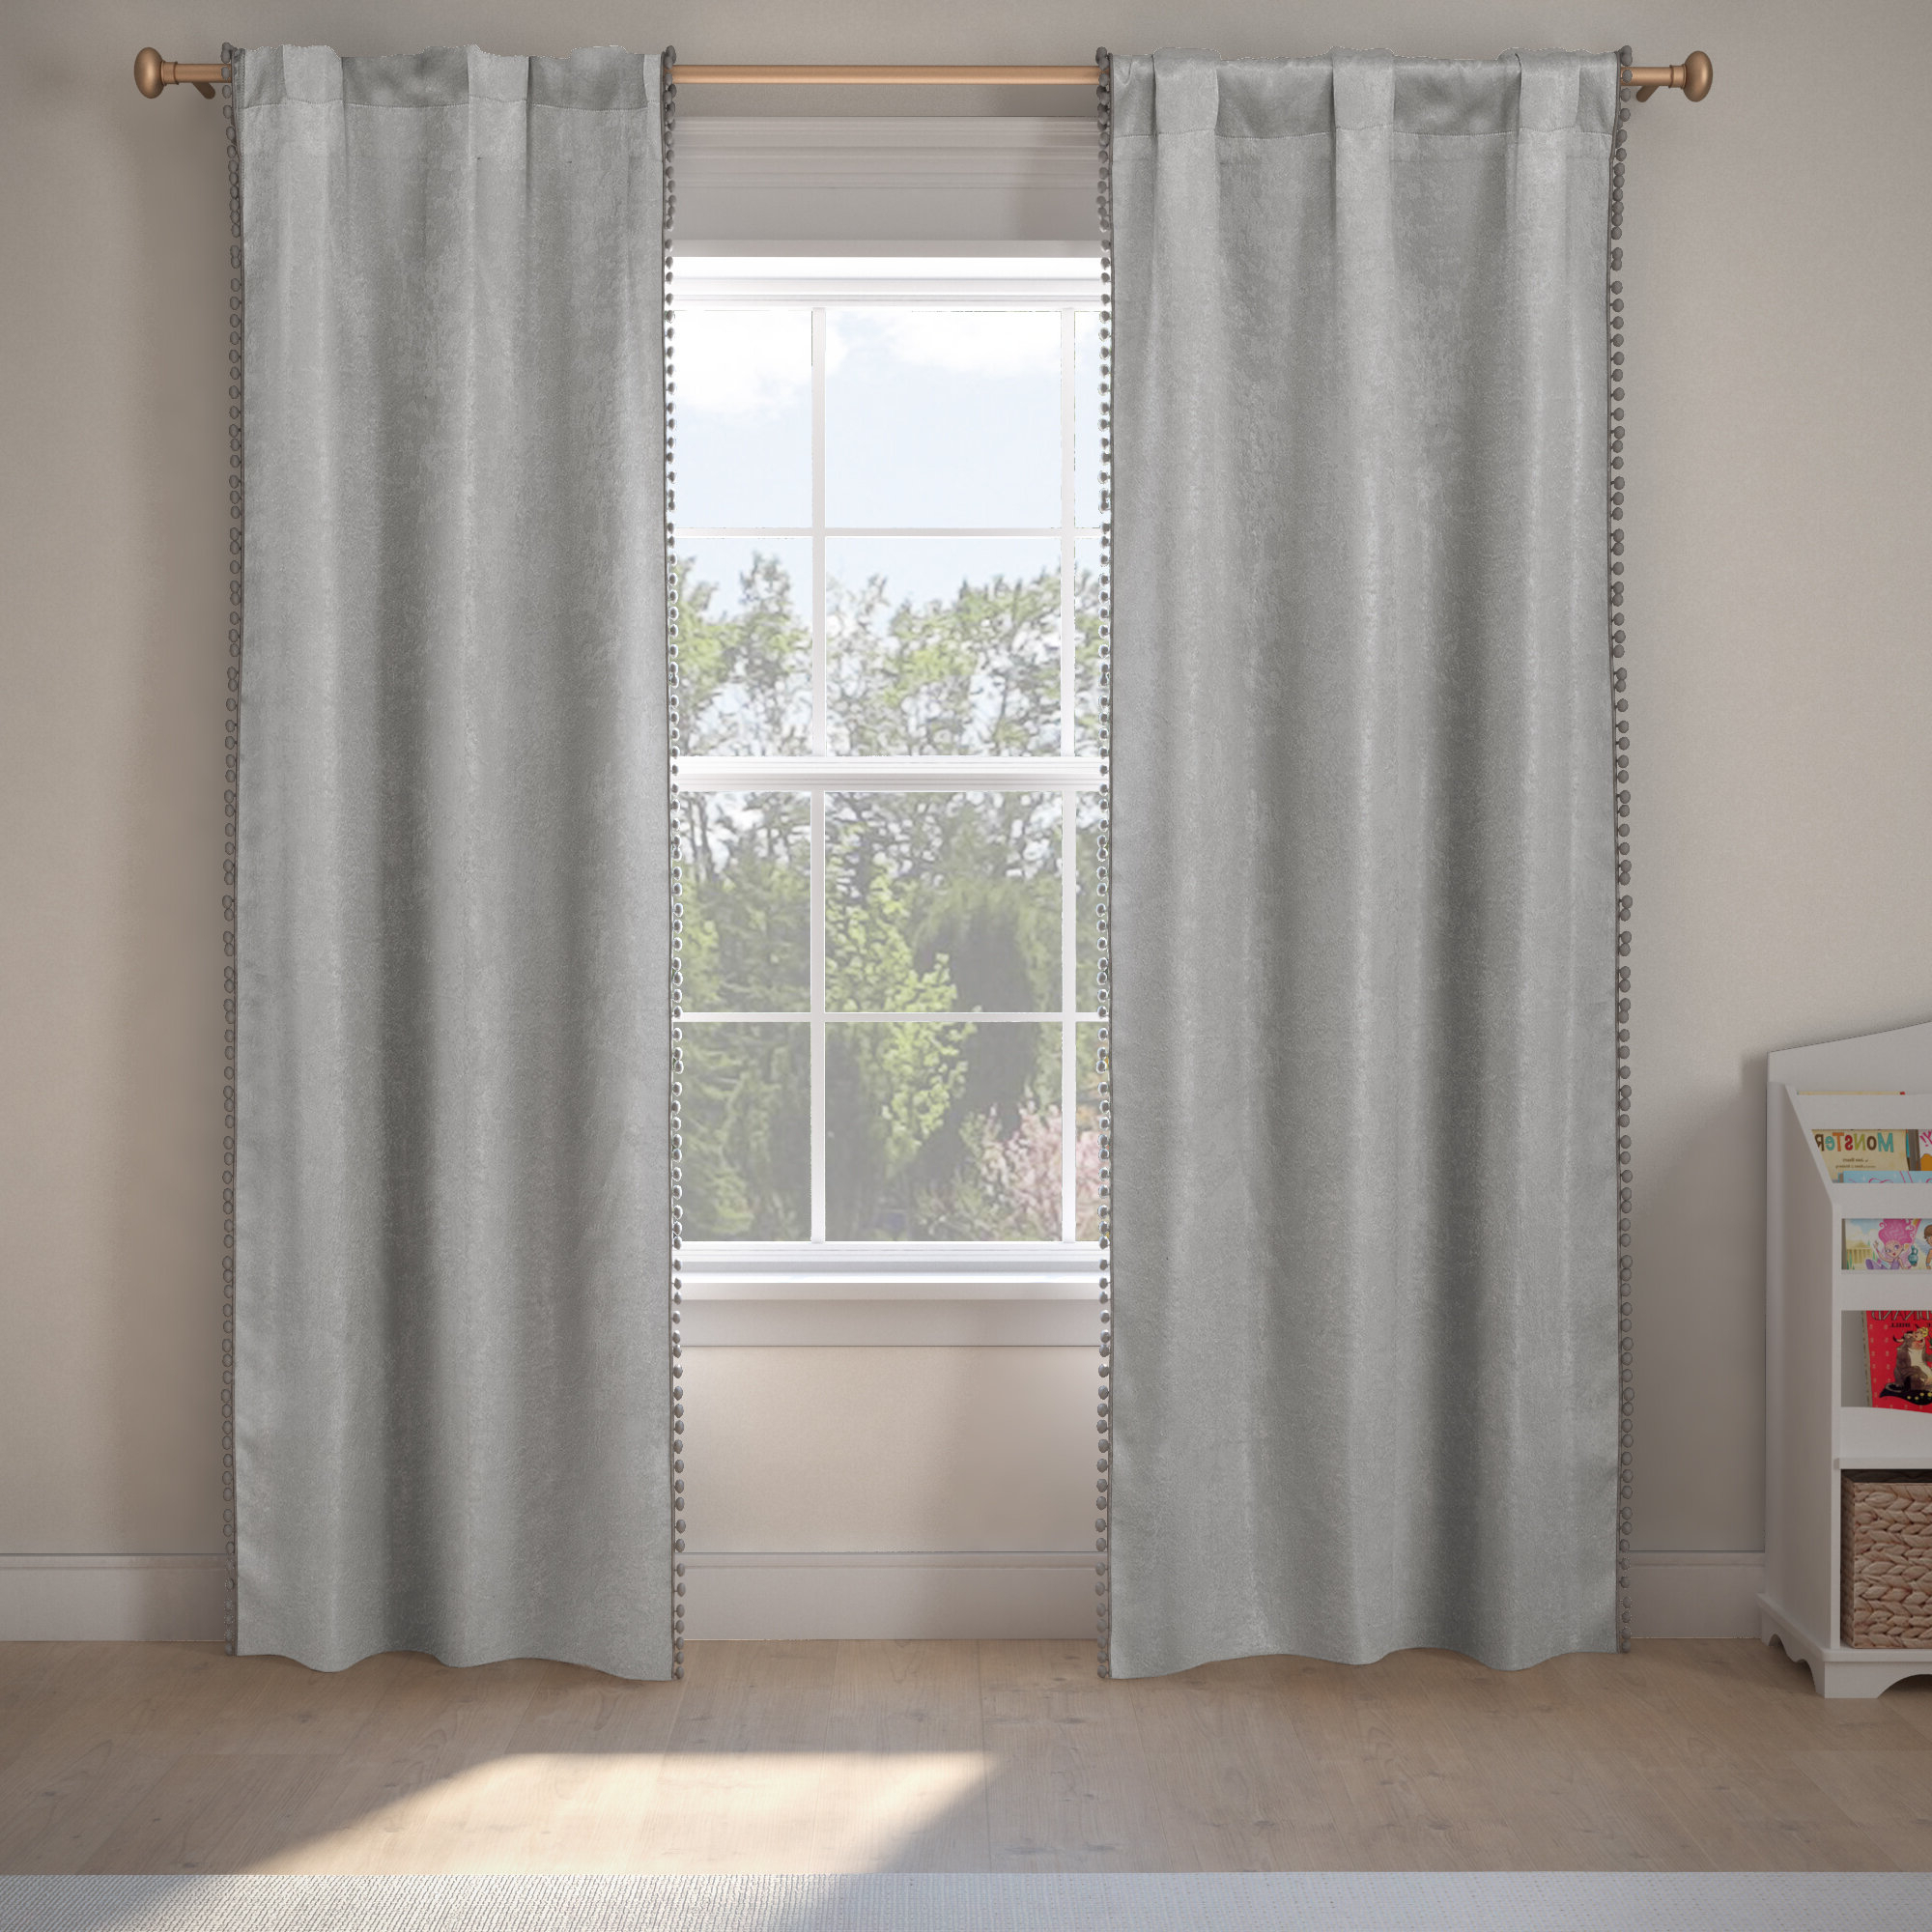 2020 Thermal Rod Pocket Blackout Curtain Panel Pairs Pertaining To Albrecht Pom Poms Solid Blackout Thermal Rod Pocket Panel Pair (View 1 of 20)